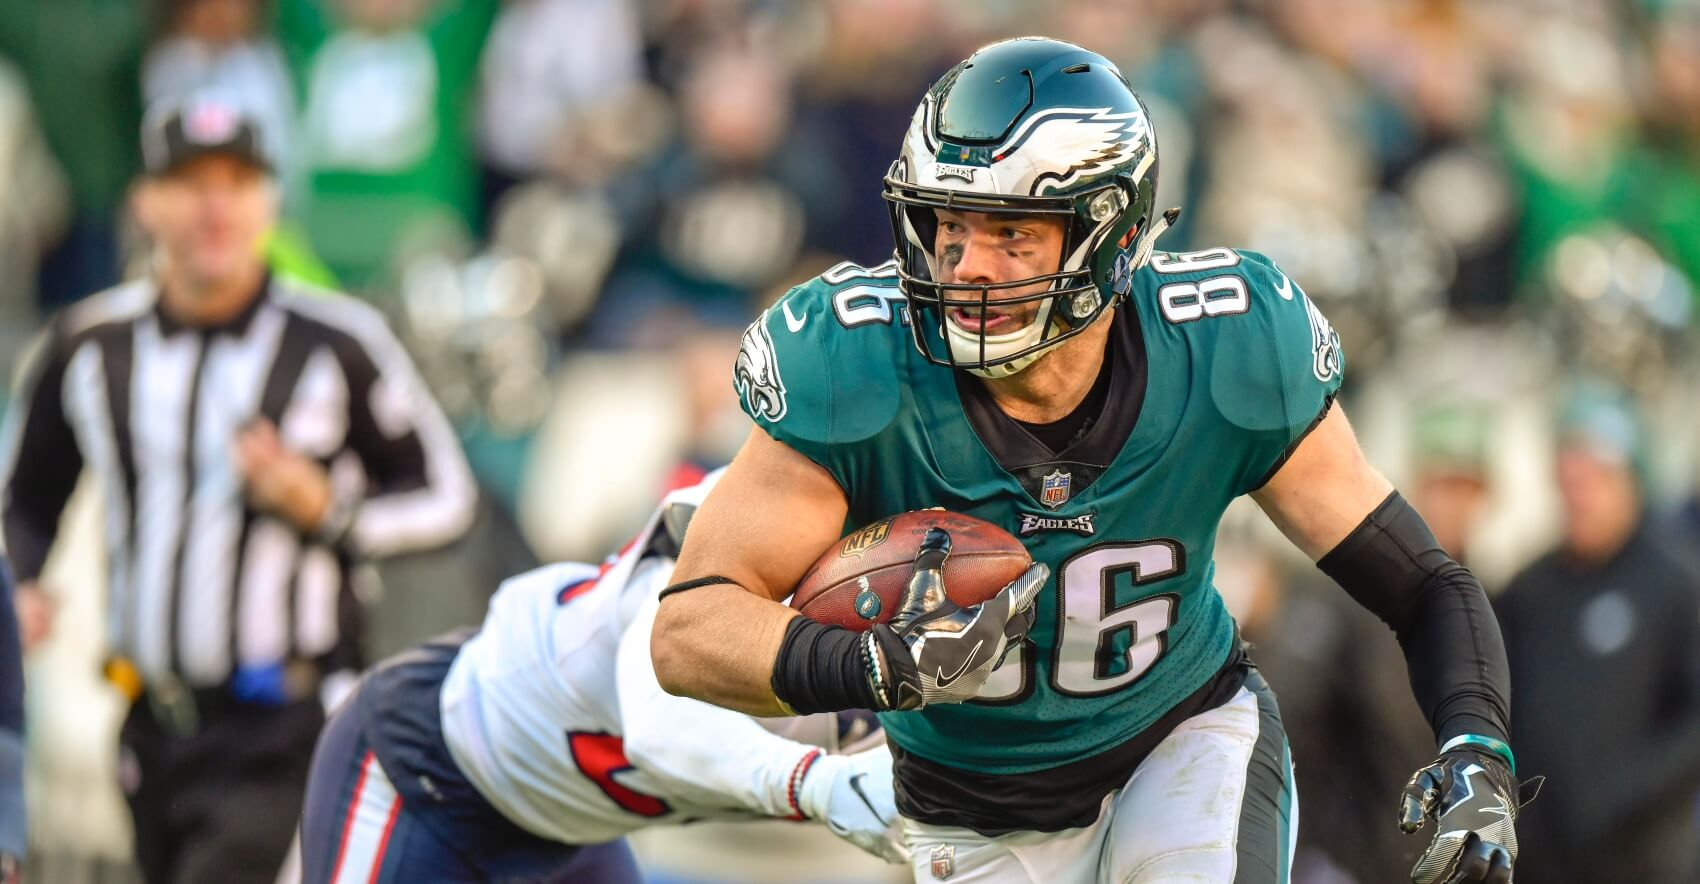 Fantasy Football: 25 TE Statistics from 2018